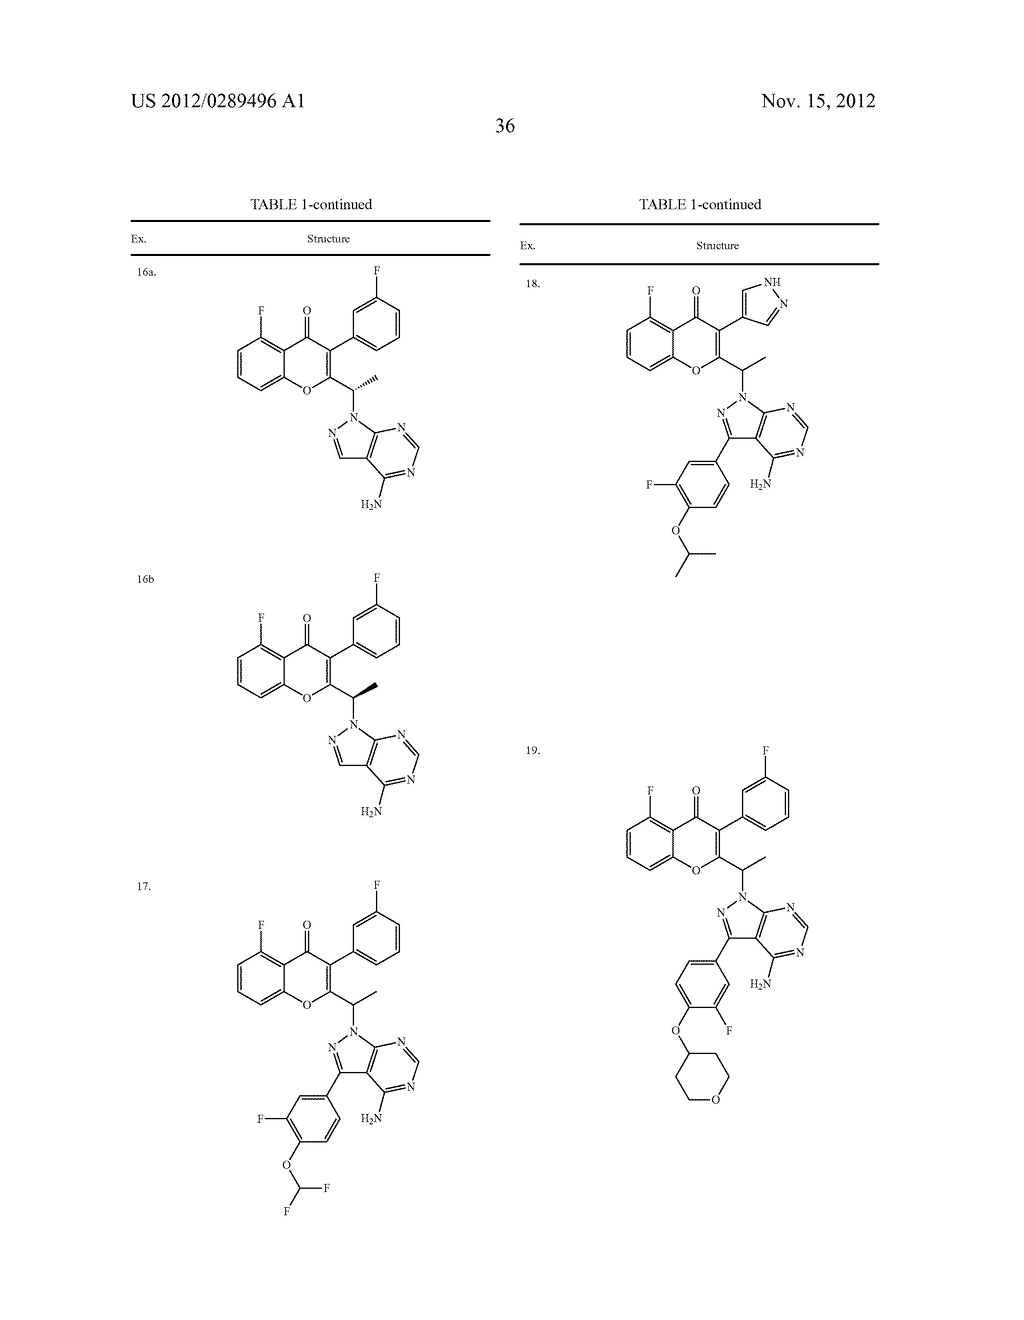 NOVEL COMPOUNDS AS MODULATORS OF PROTEIN KINASES - diagram, schematic, and image 37